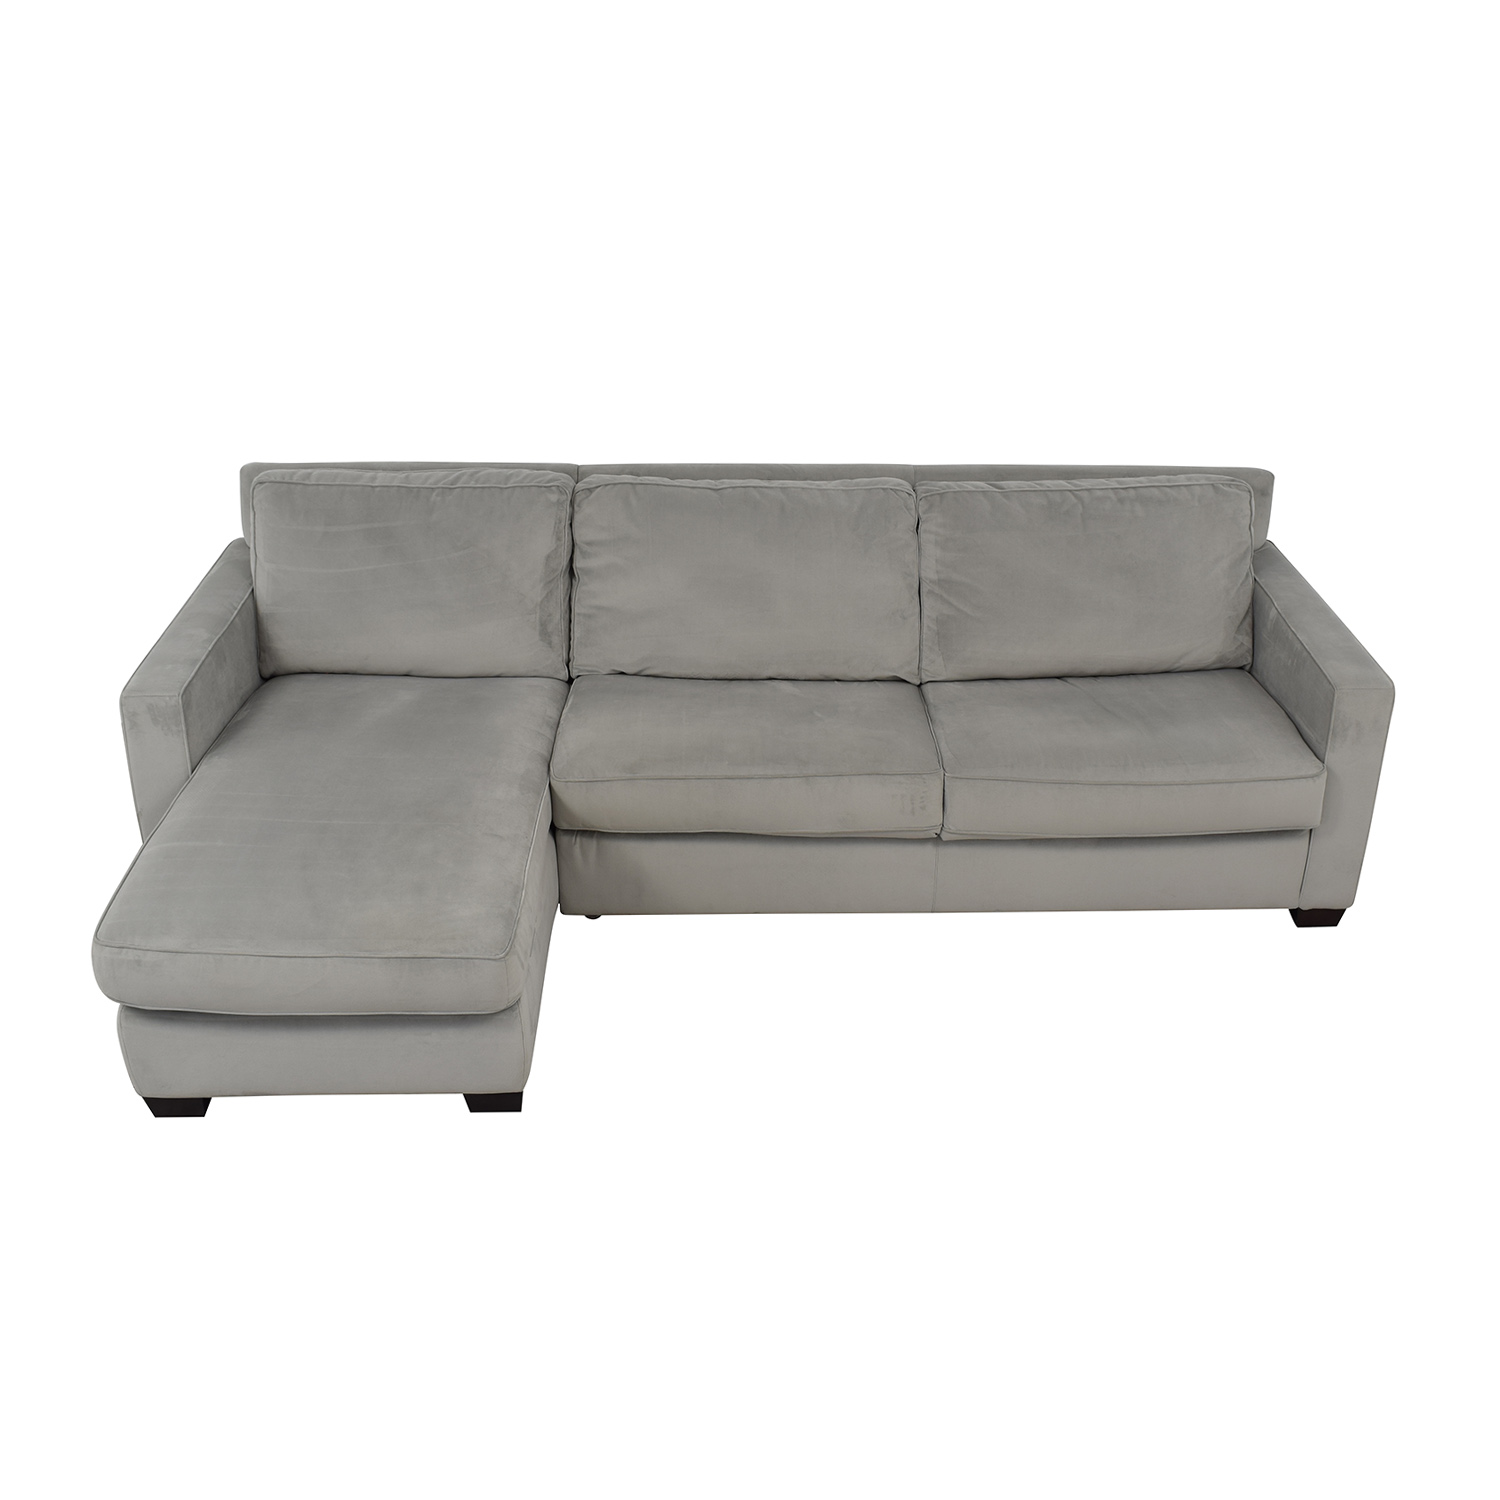 64 Off West Elm West Elm Henry Queen Sleeper Sofa With Left Arm Chaise Sofas